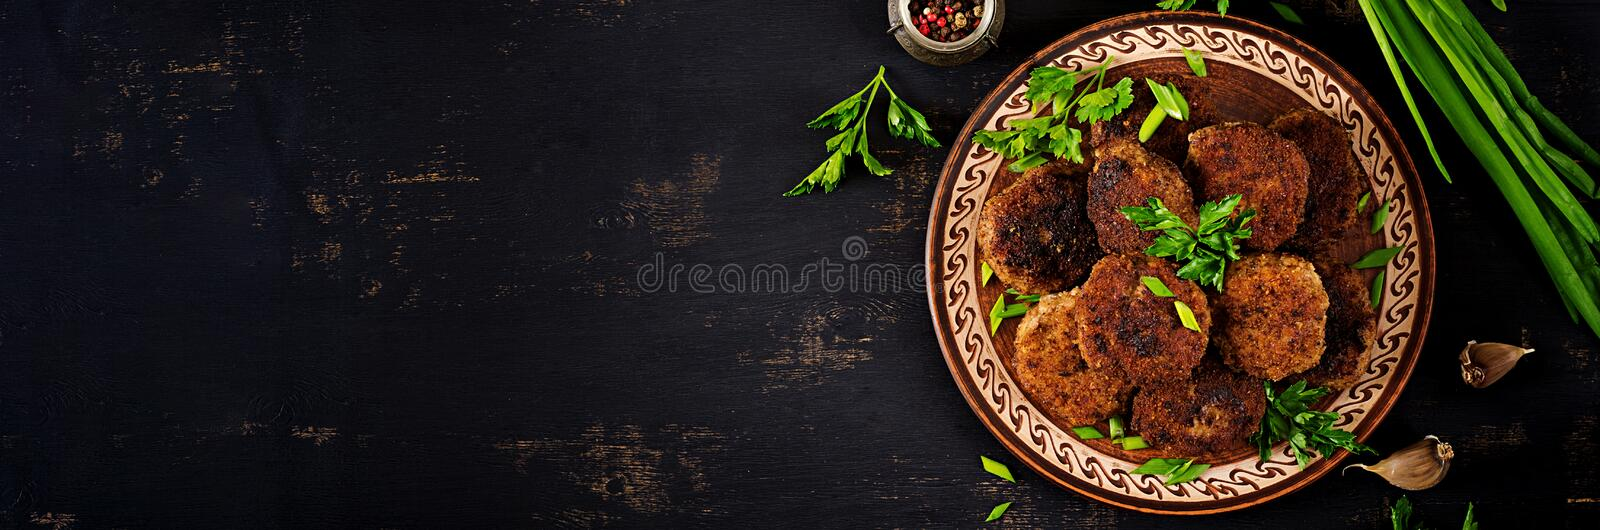 Juicy delicious meat cutlets on a dark table. Russian cuisine. Banner.  Top view stock image